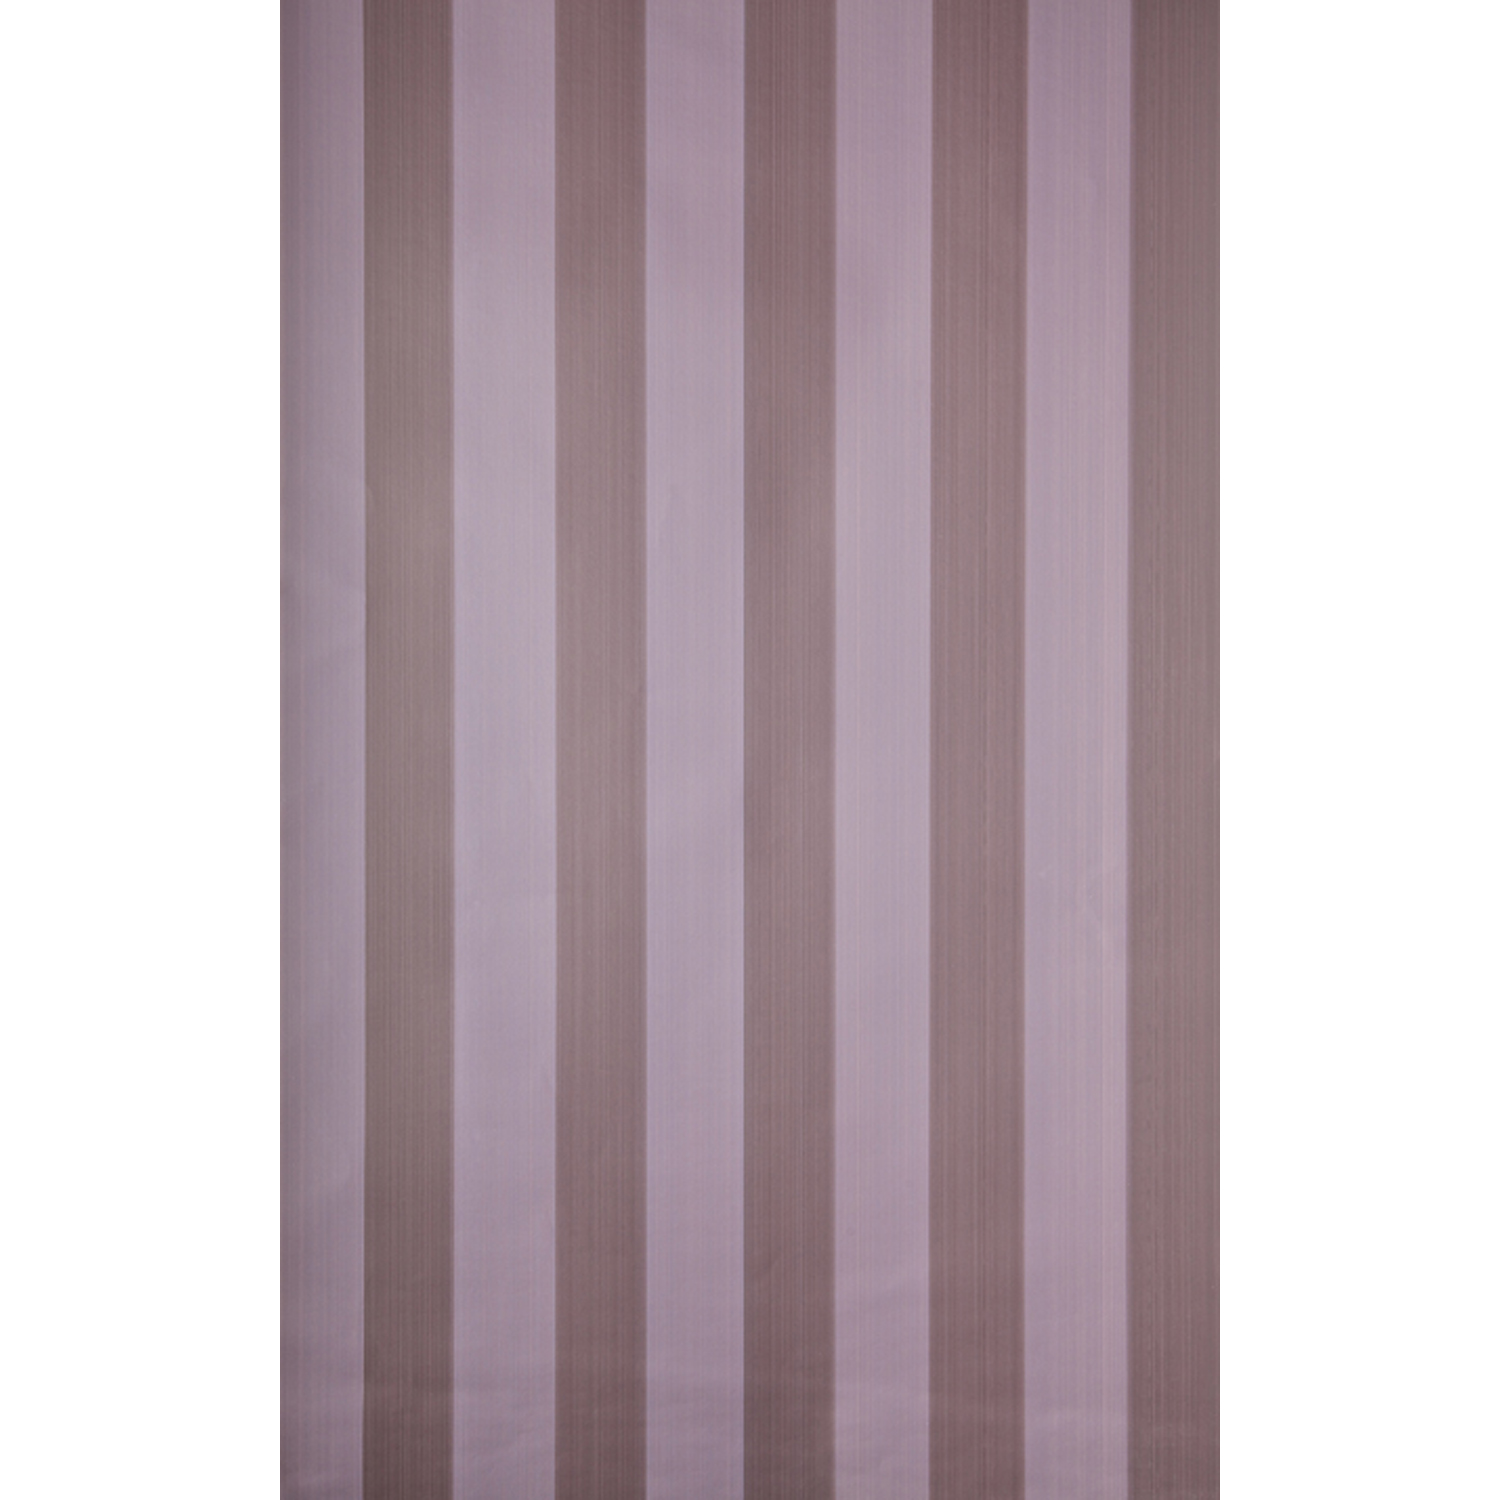 Image of Farrow And Ball 5 Stripe Wallpaper 6-98, Pink